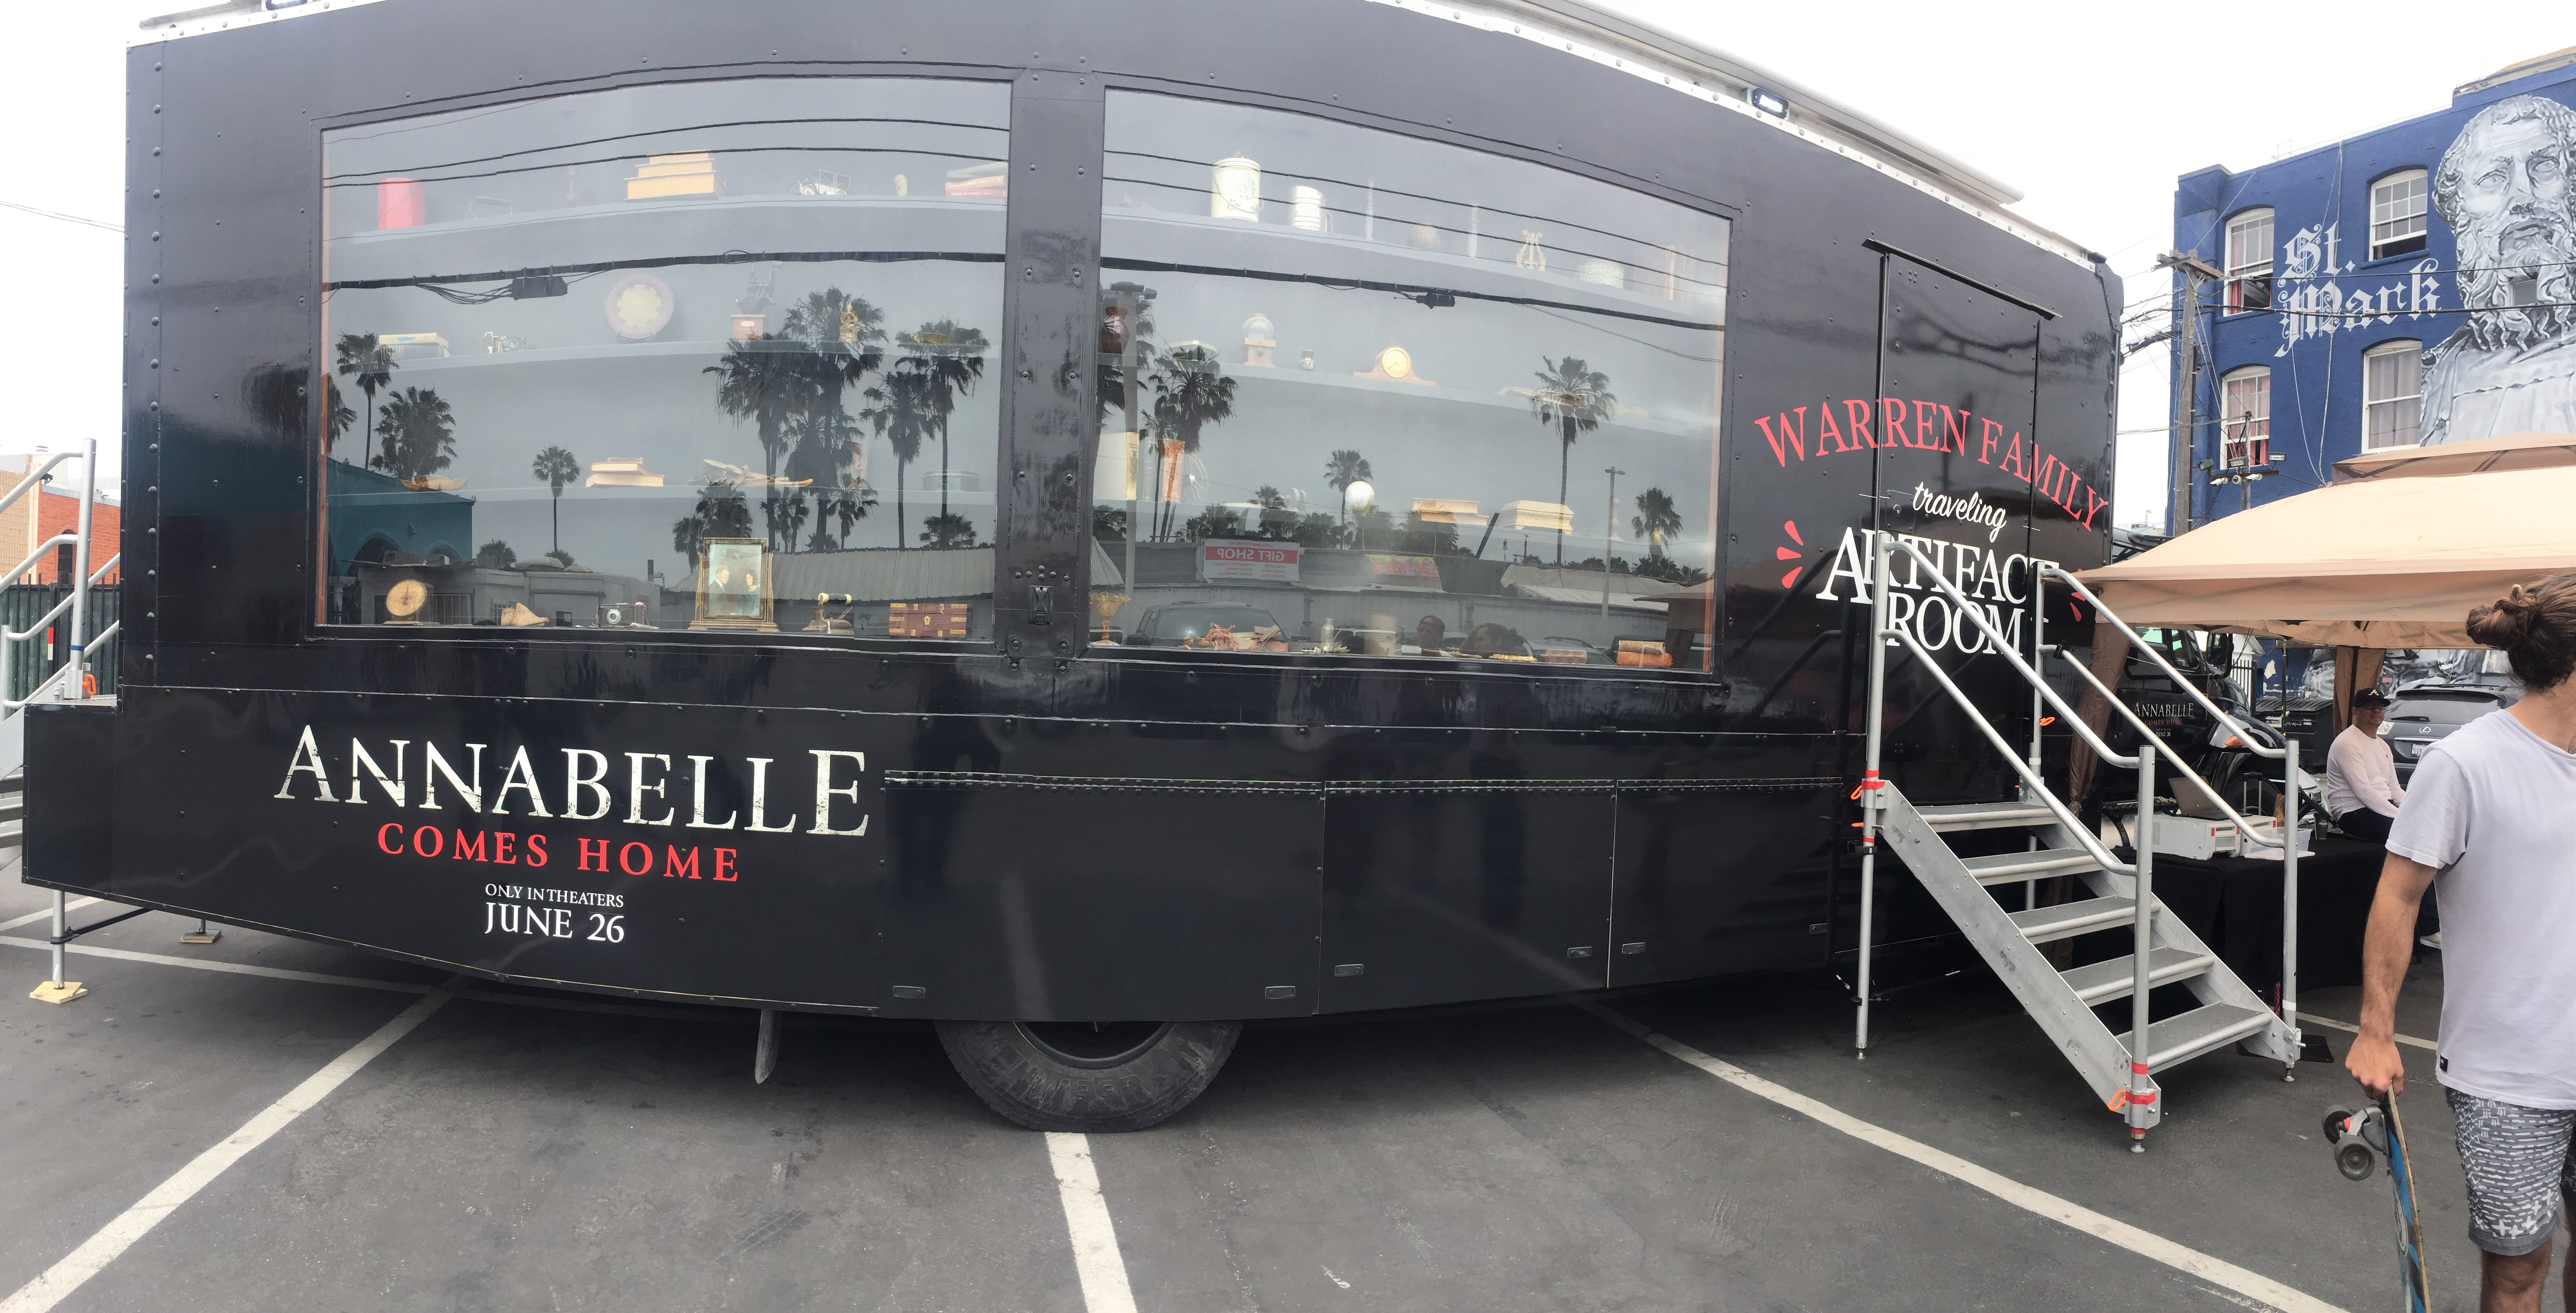 Photos from the 'Annabelle Comes Home' Artifact Tour Truck